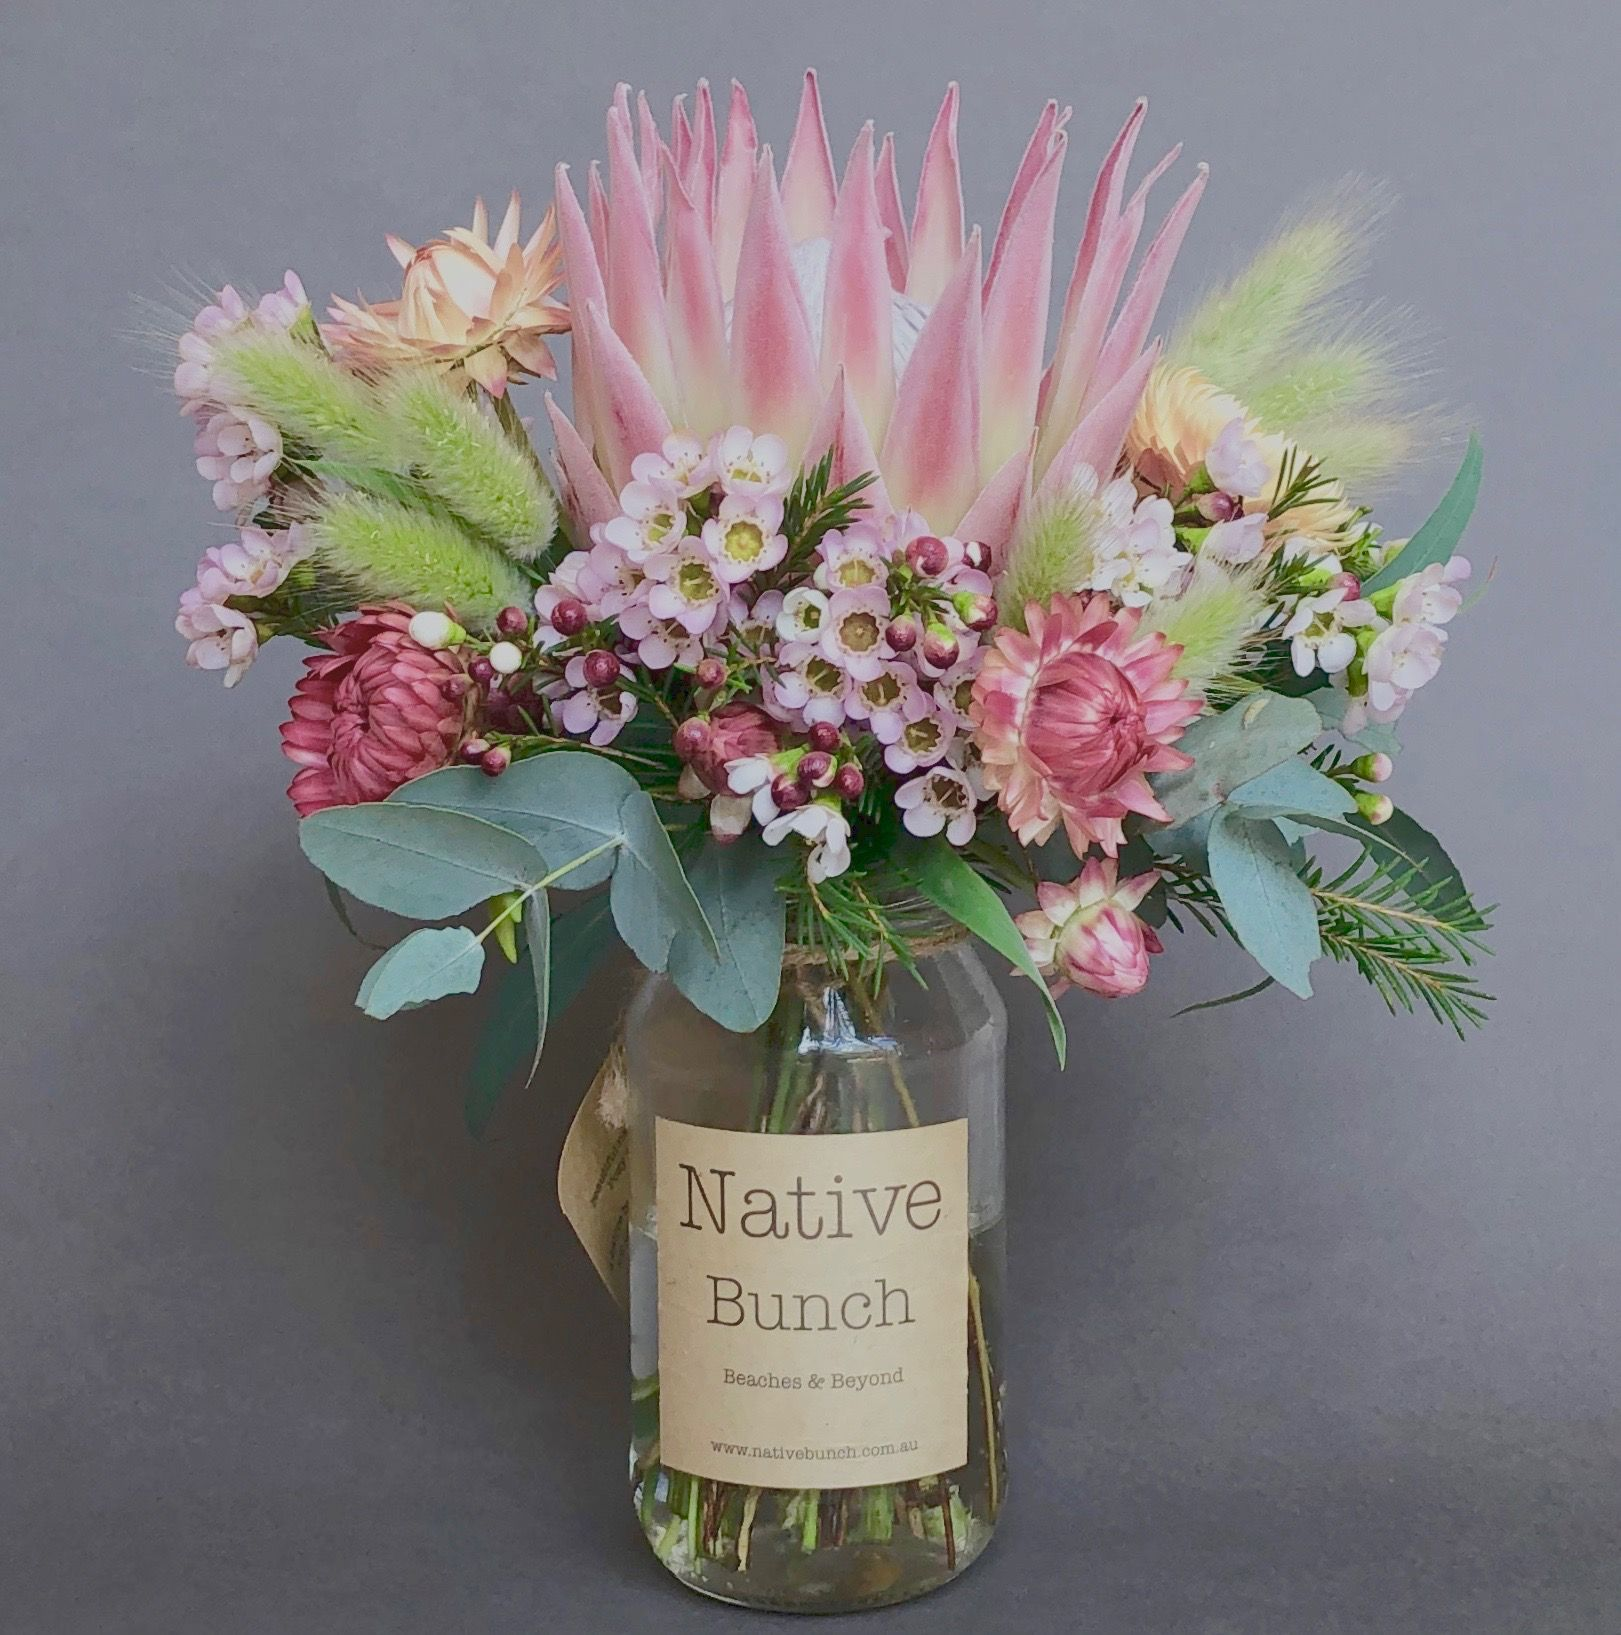 Native posy by Native Bunch Sydney This weeks posy king